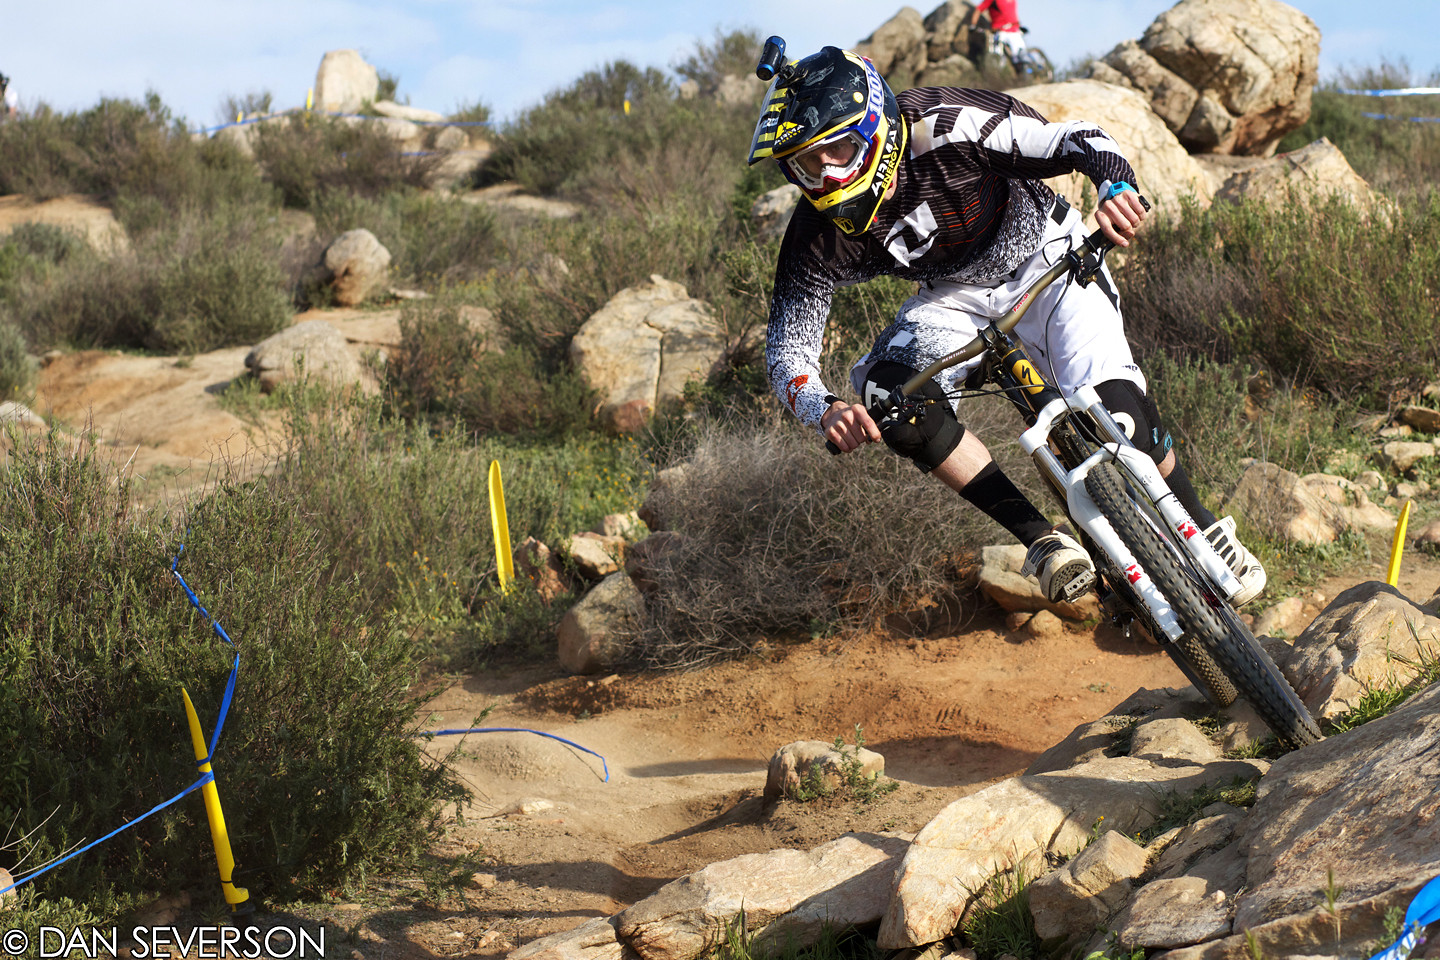 John Keep Fontana Practice  - danseverson photo - Mountain Biking Pictures - Vital MTB